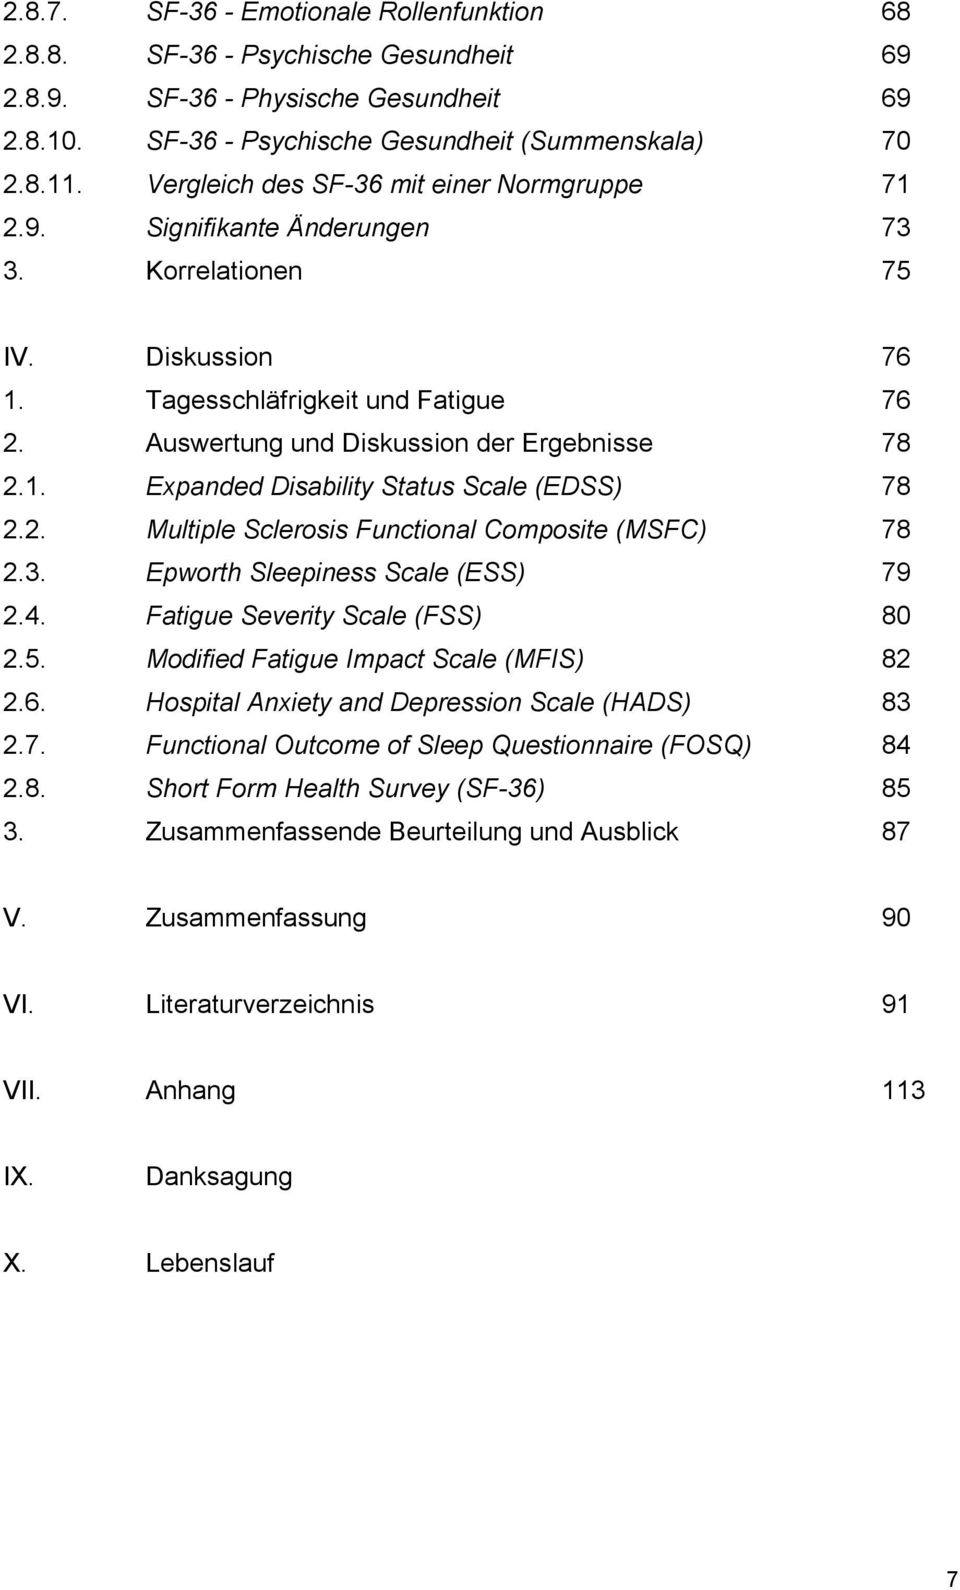 1. Expanded Disability Status Scale (EDSS) 78 2.2. Multiple Sclerosis Functional Composite (MSFC) 78 2.3. Epworth Sleepiness Scale (ESS) 79 2.4. Fatigue Severity Scale (FSS) 80 2.5.